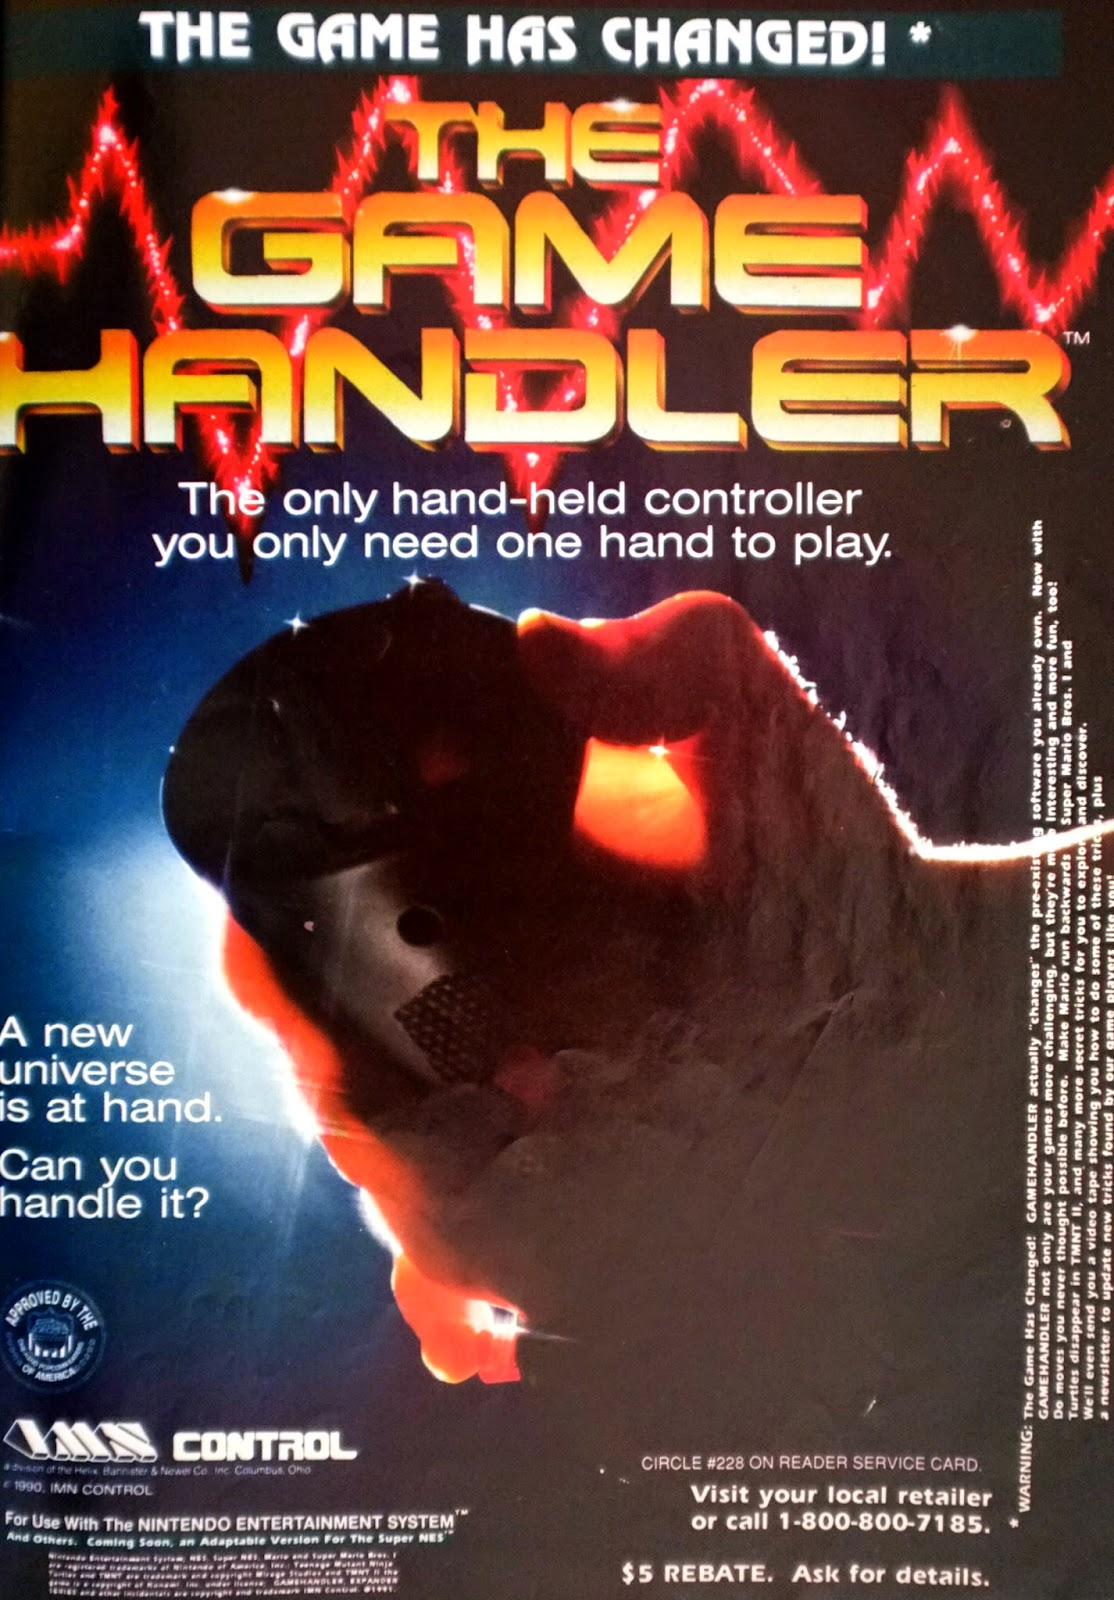 The Game Handler advertisement